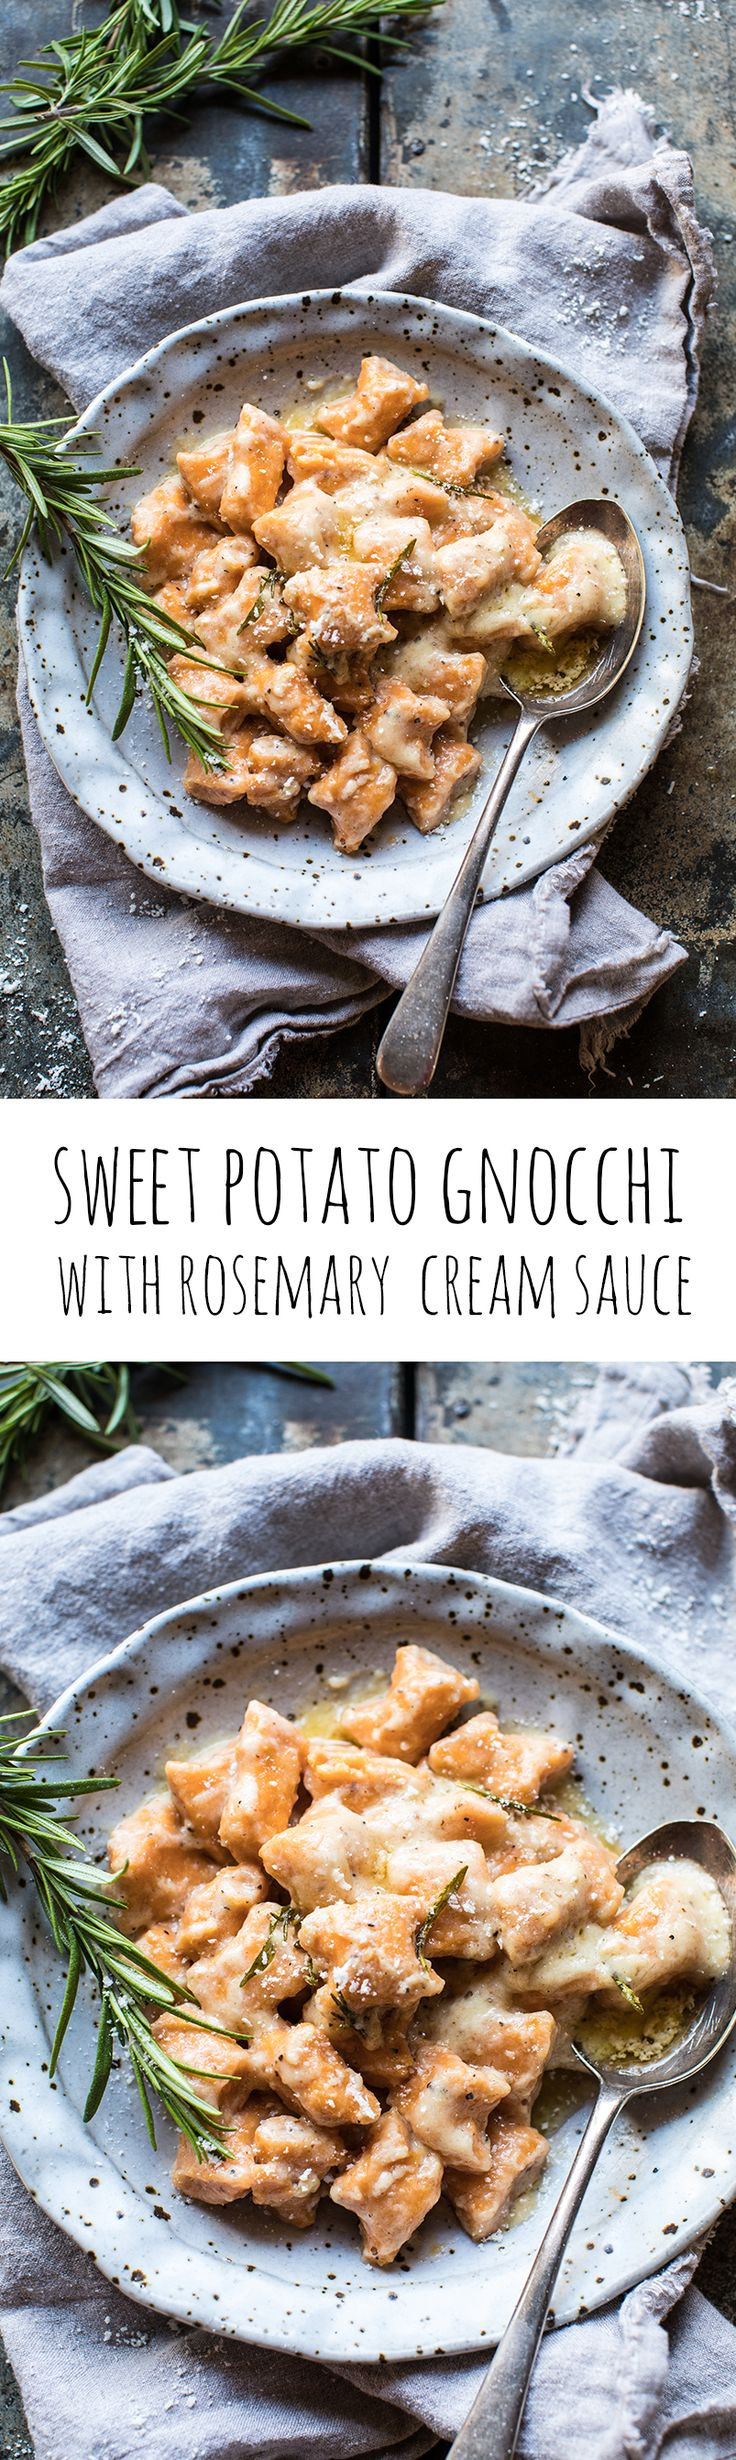 Sweet Potato Gnocchi with Rosemary Cream Sauce | halfbakedharvest.com @hbharvest